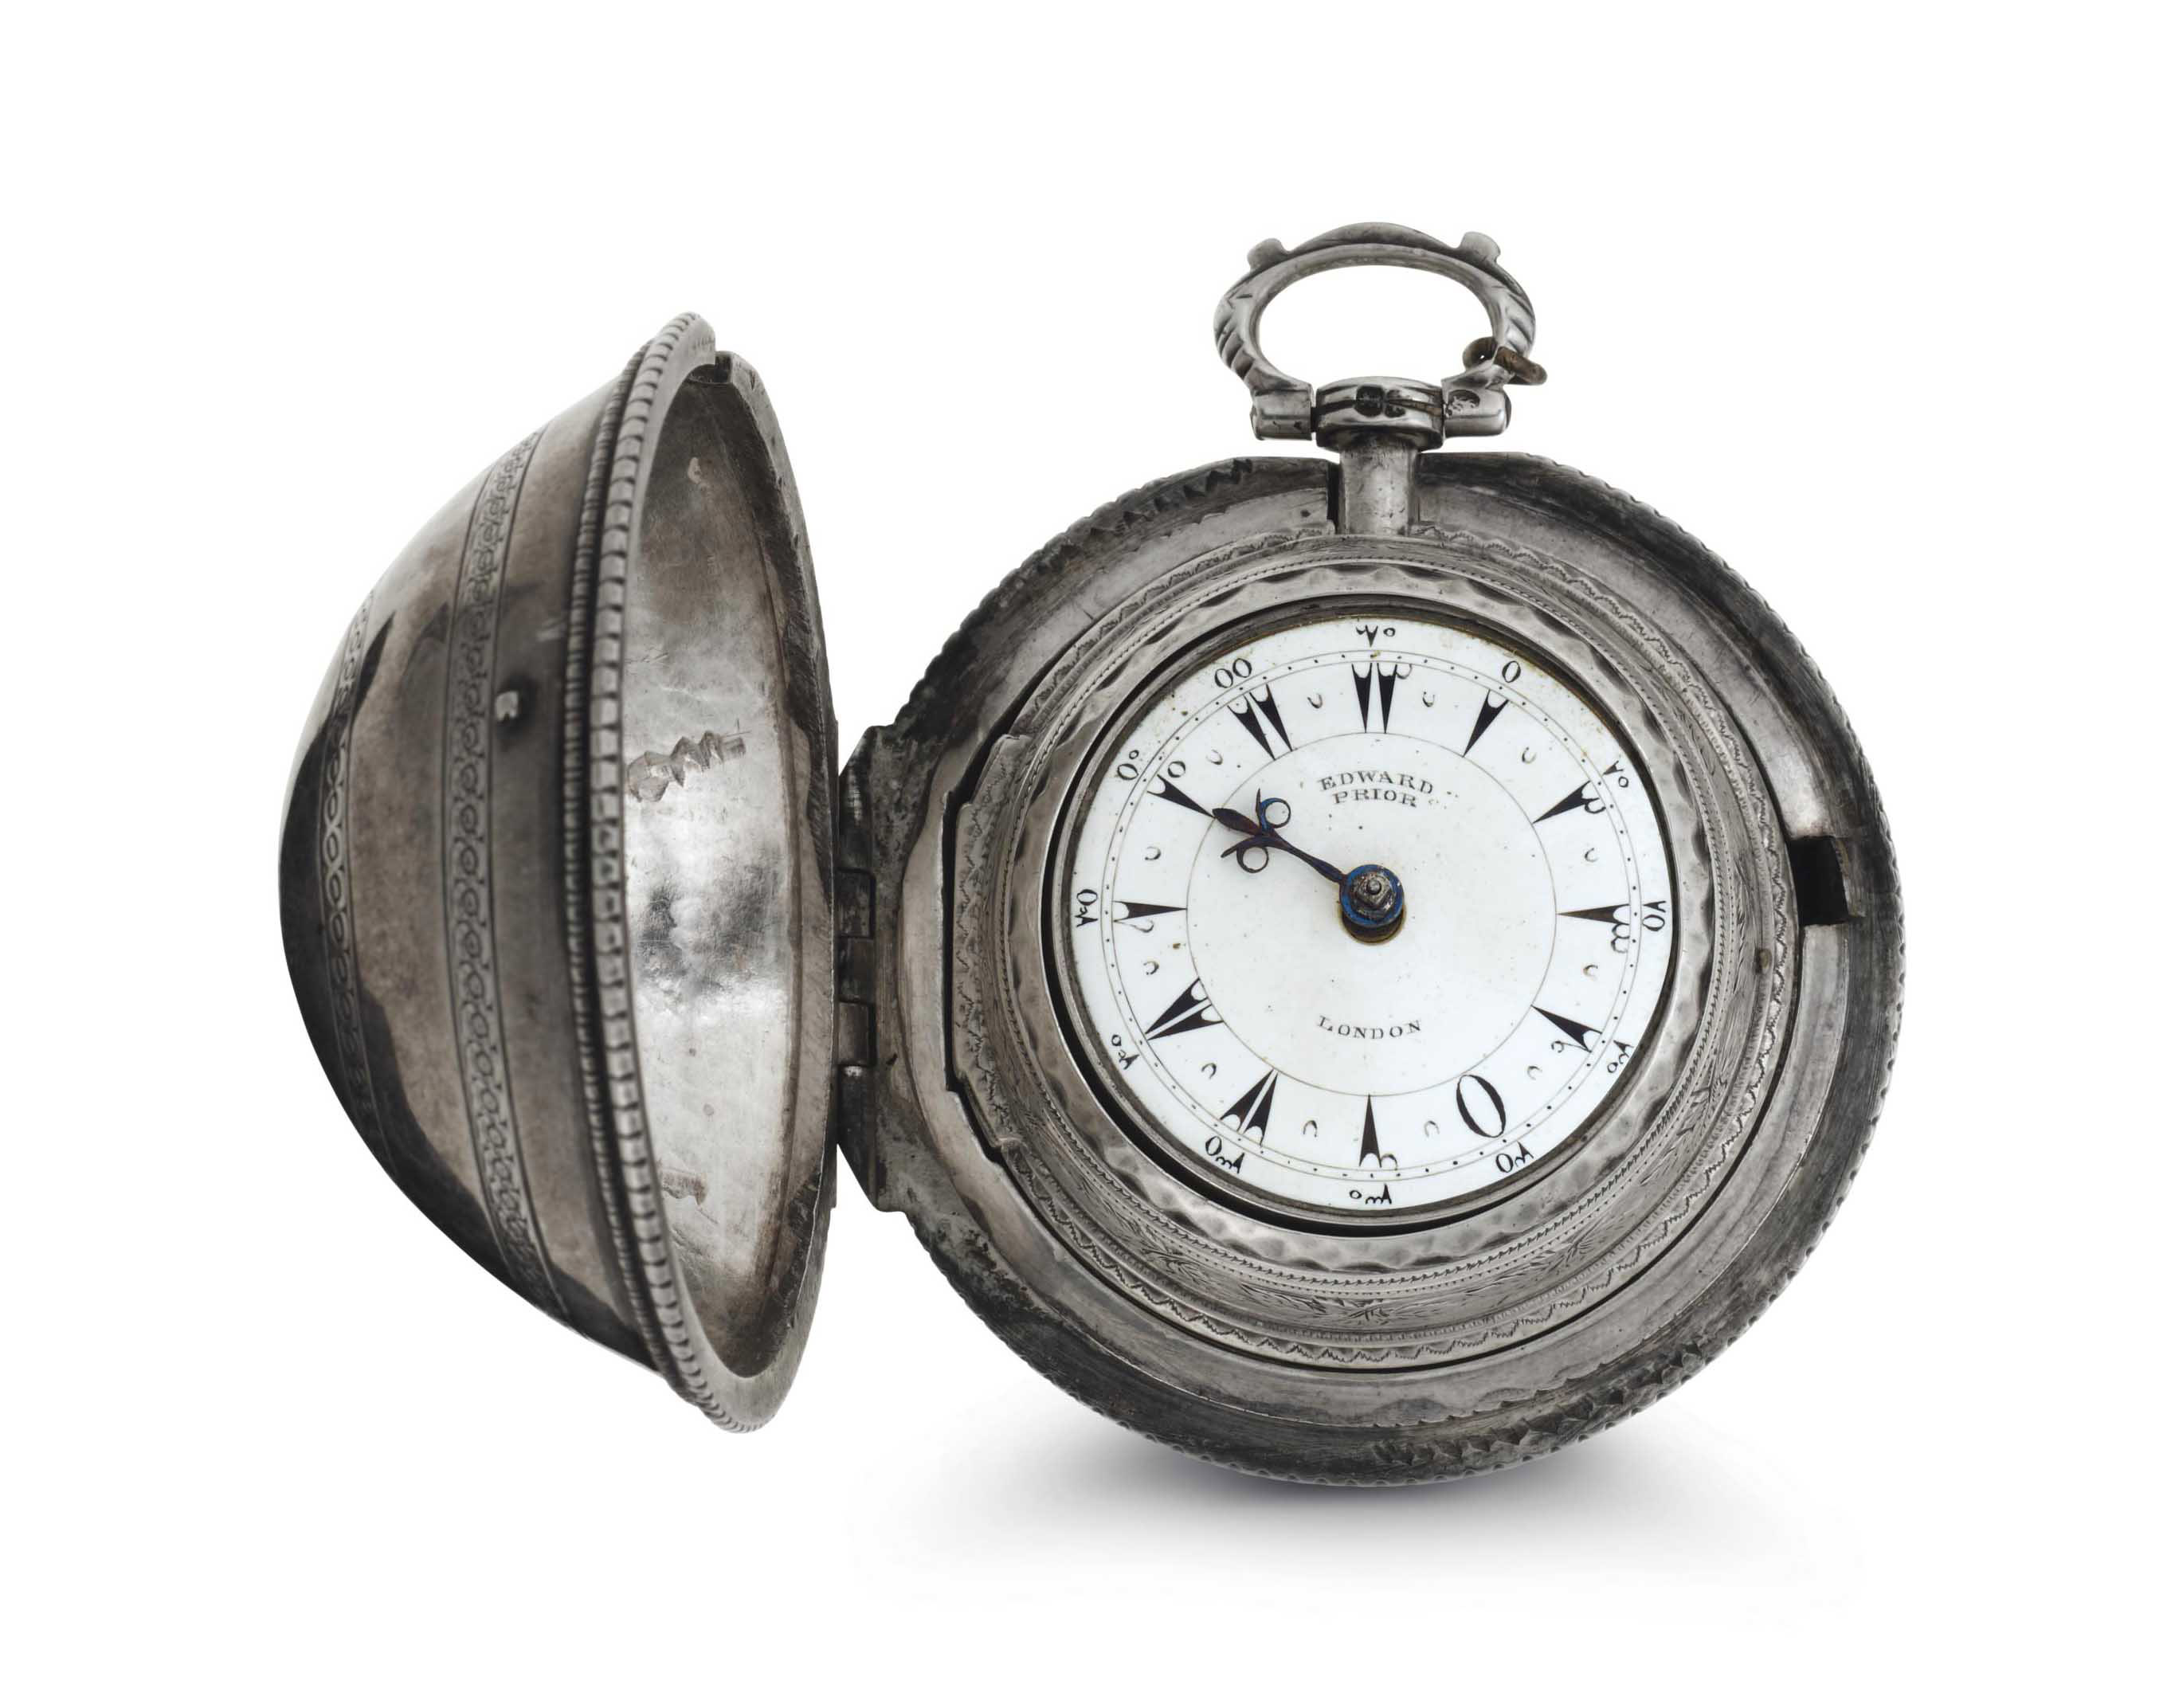 Edward Prior. A Fine Silver Triple Case Keywound Verge Watch Made For The Turkish Market